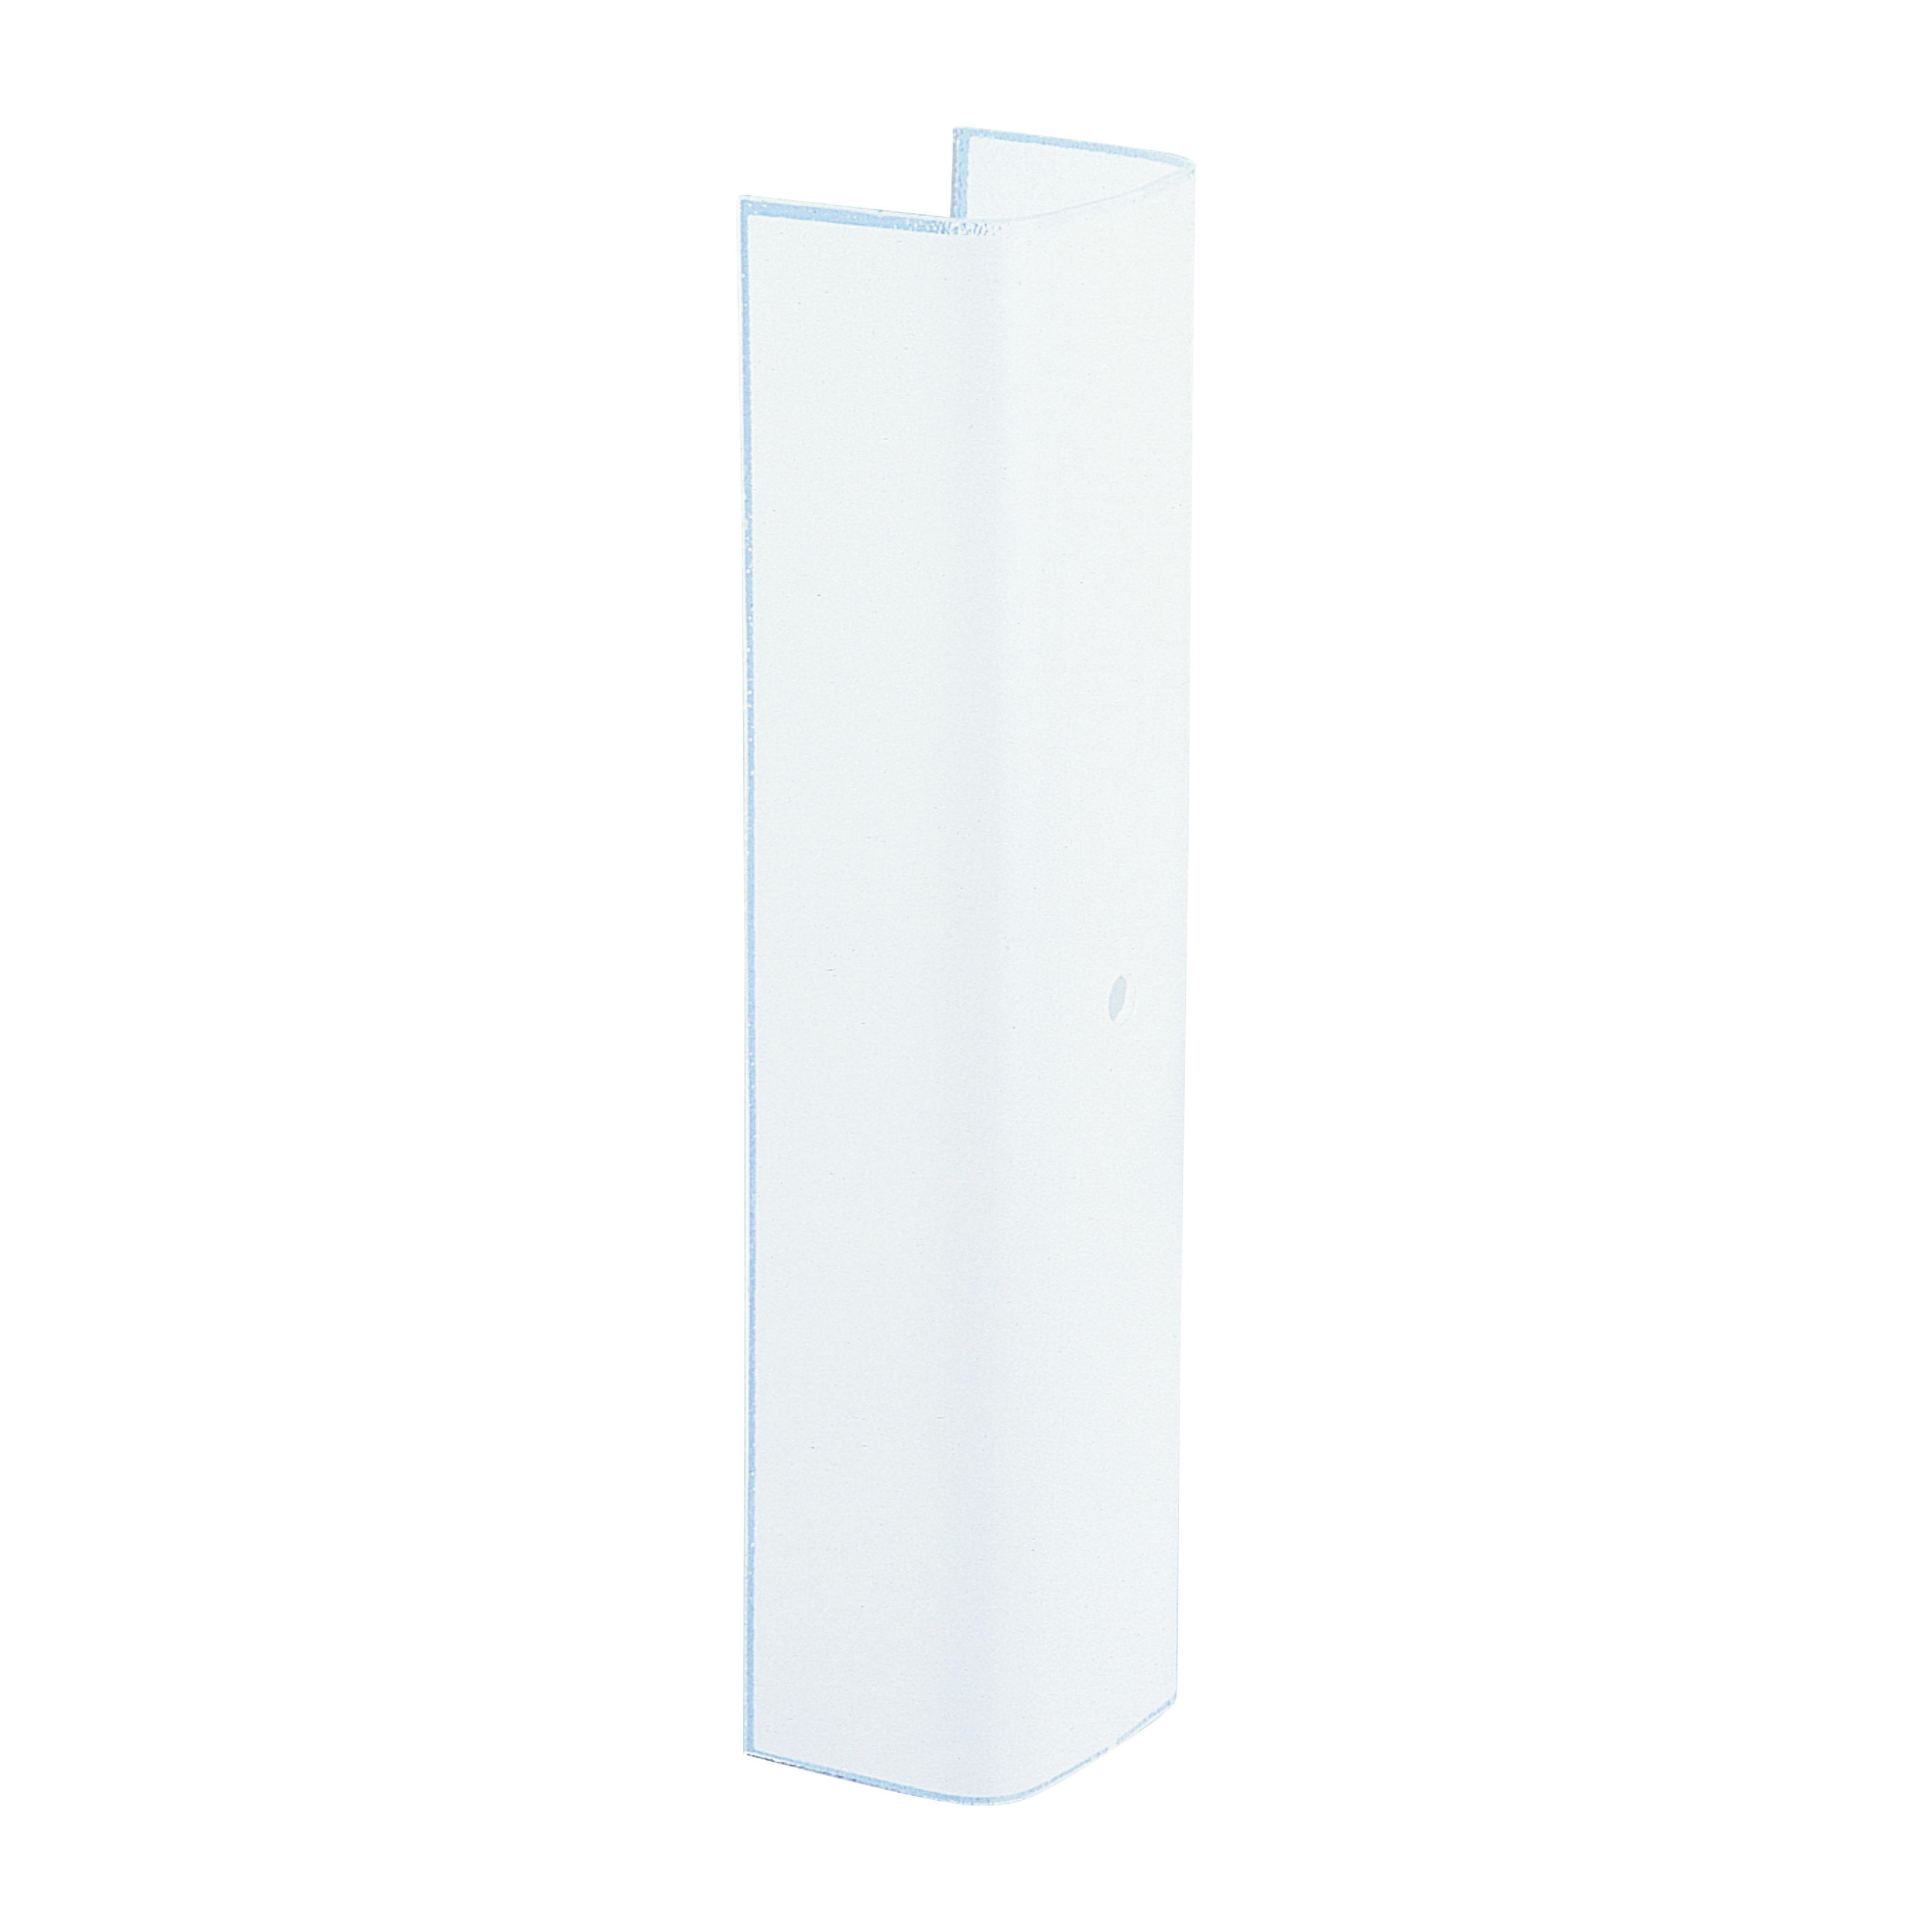 Picture of Westinghouse 8175900 Channel Shade, Rectangular, Glass, White